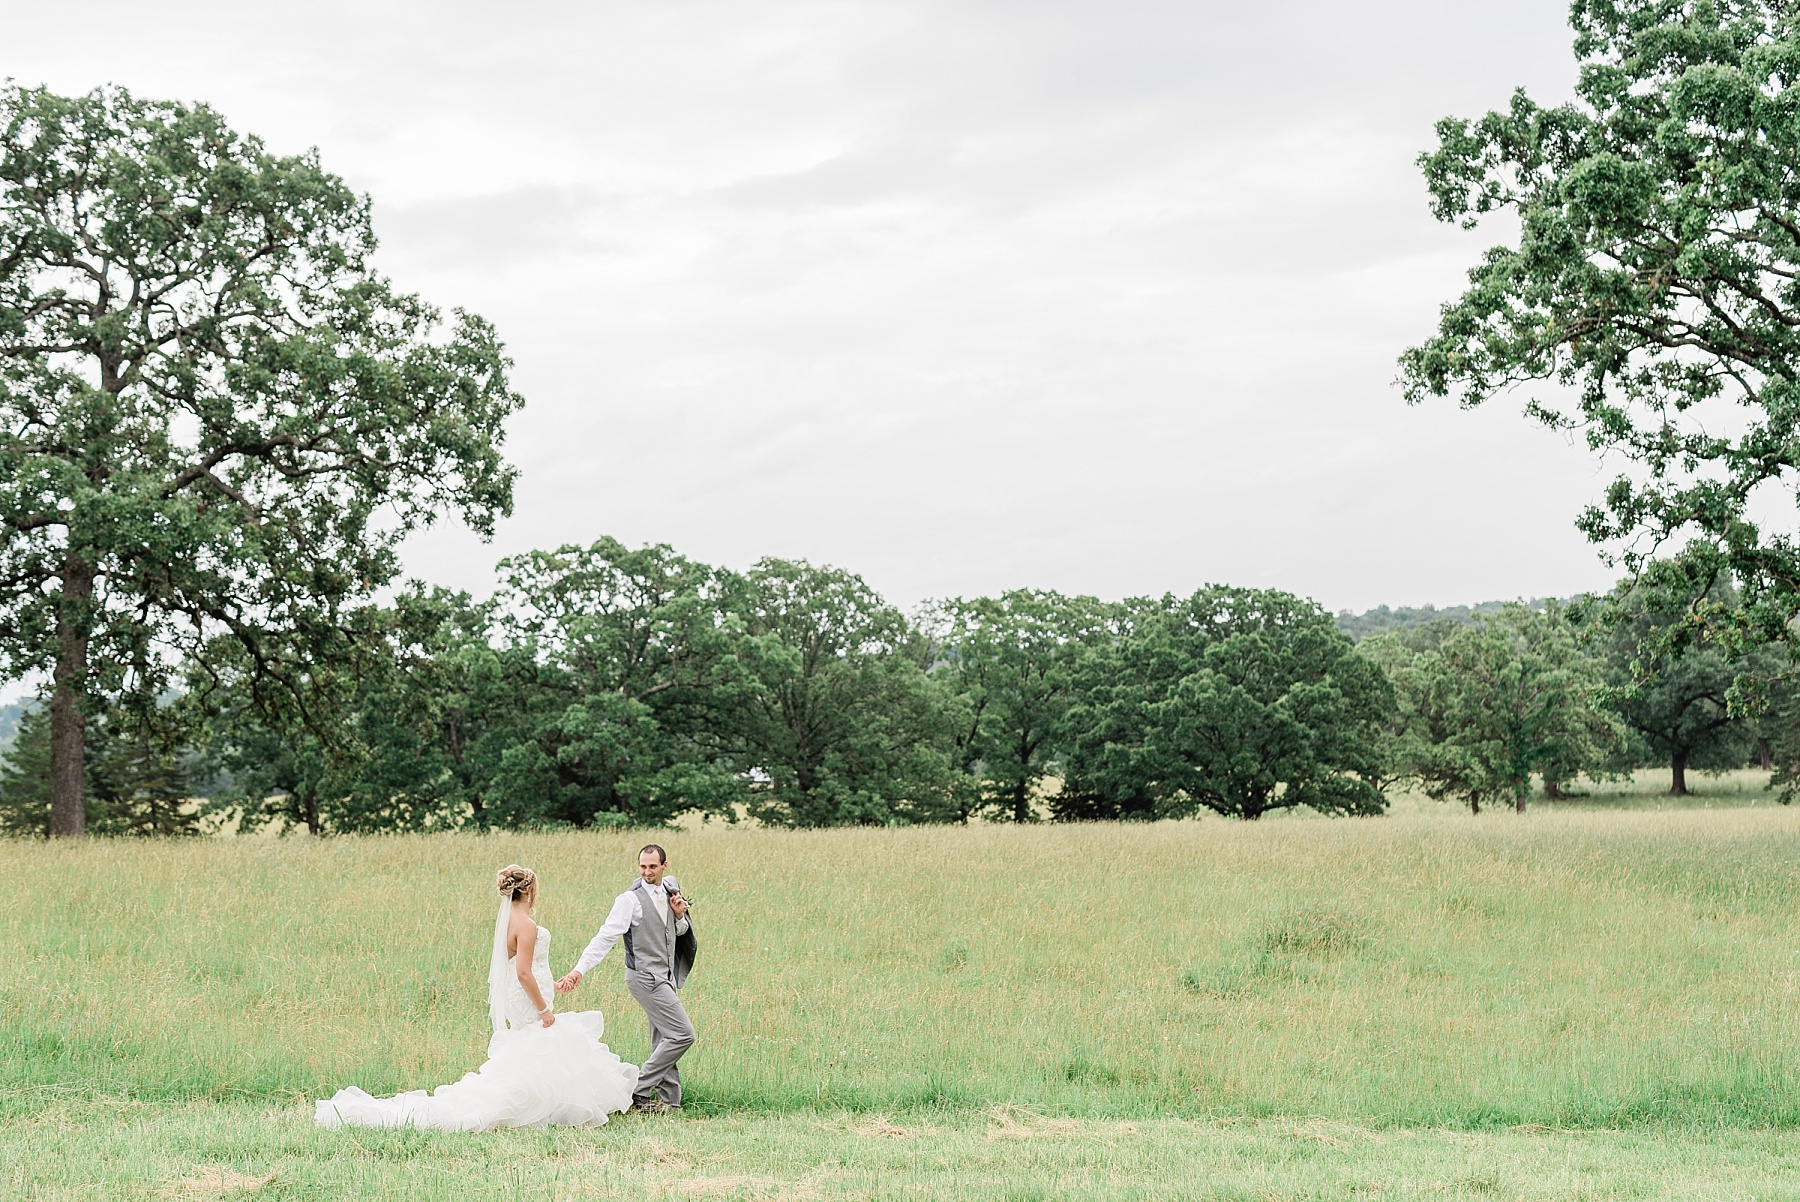 Sky Blue and Quartz Spring Wedding at Open Fields of Family Farm by Kelsi Kliethermes Photography Best Missouri and Maui Wedding Photographer_0021.jpg